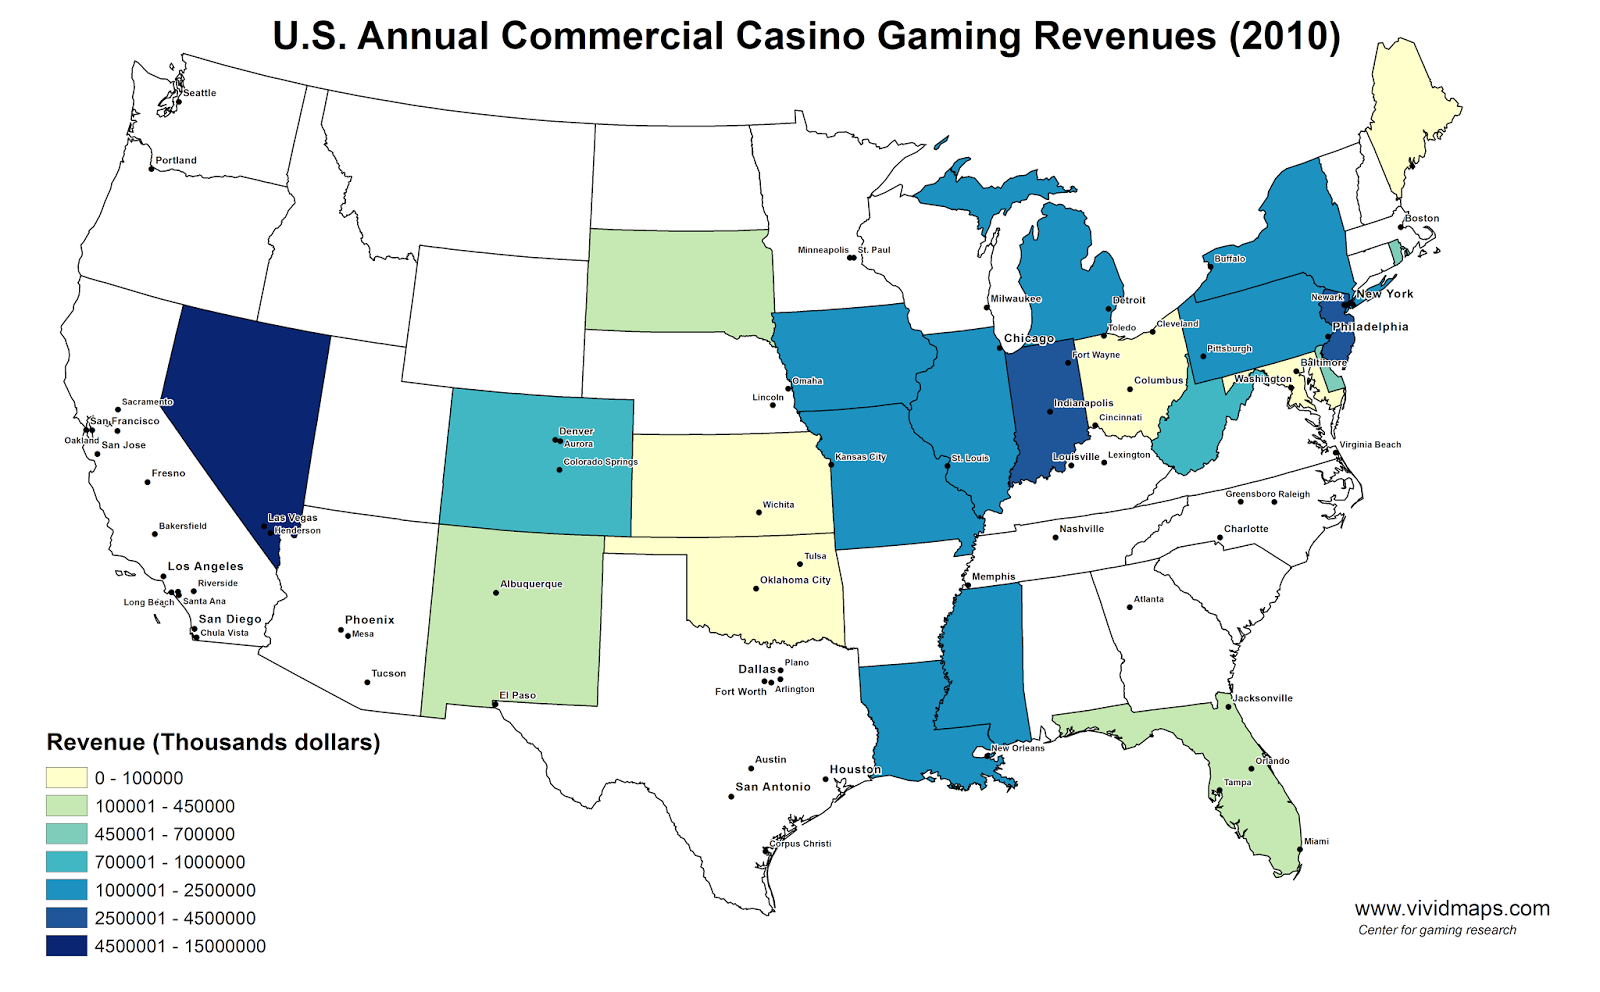 U.S. Annual Commercial Casino Gaming Revenues (2010)